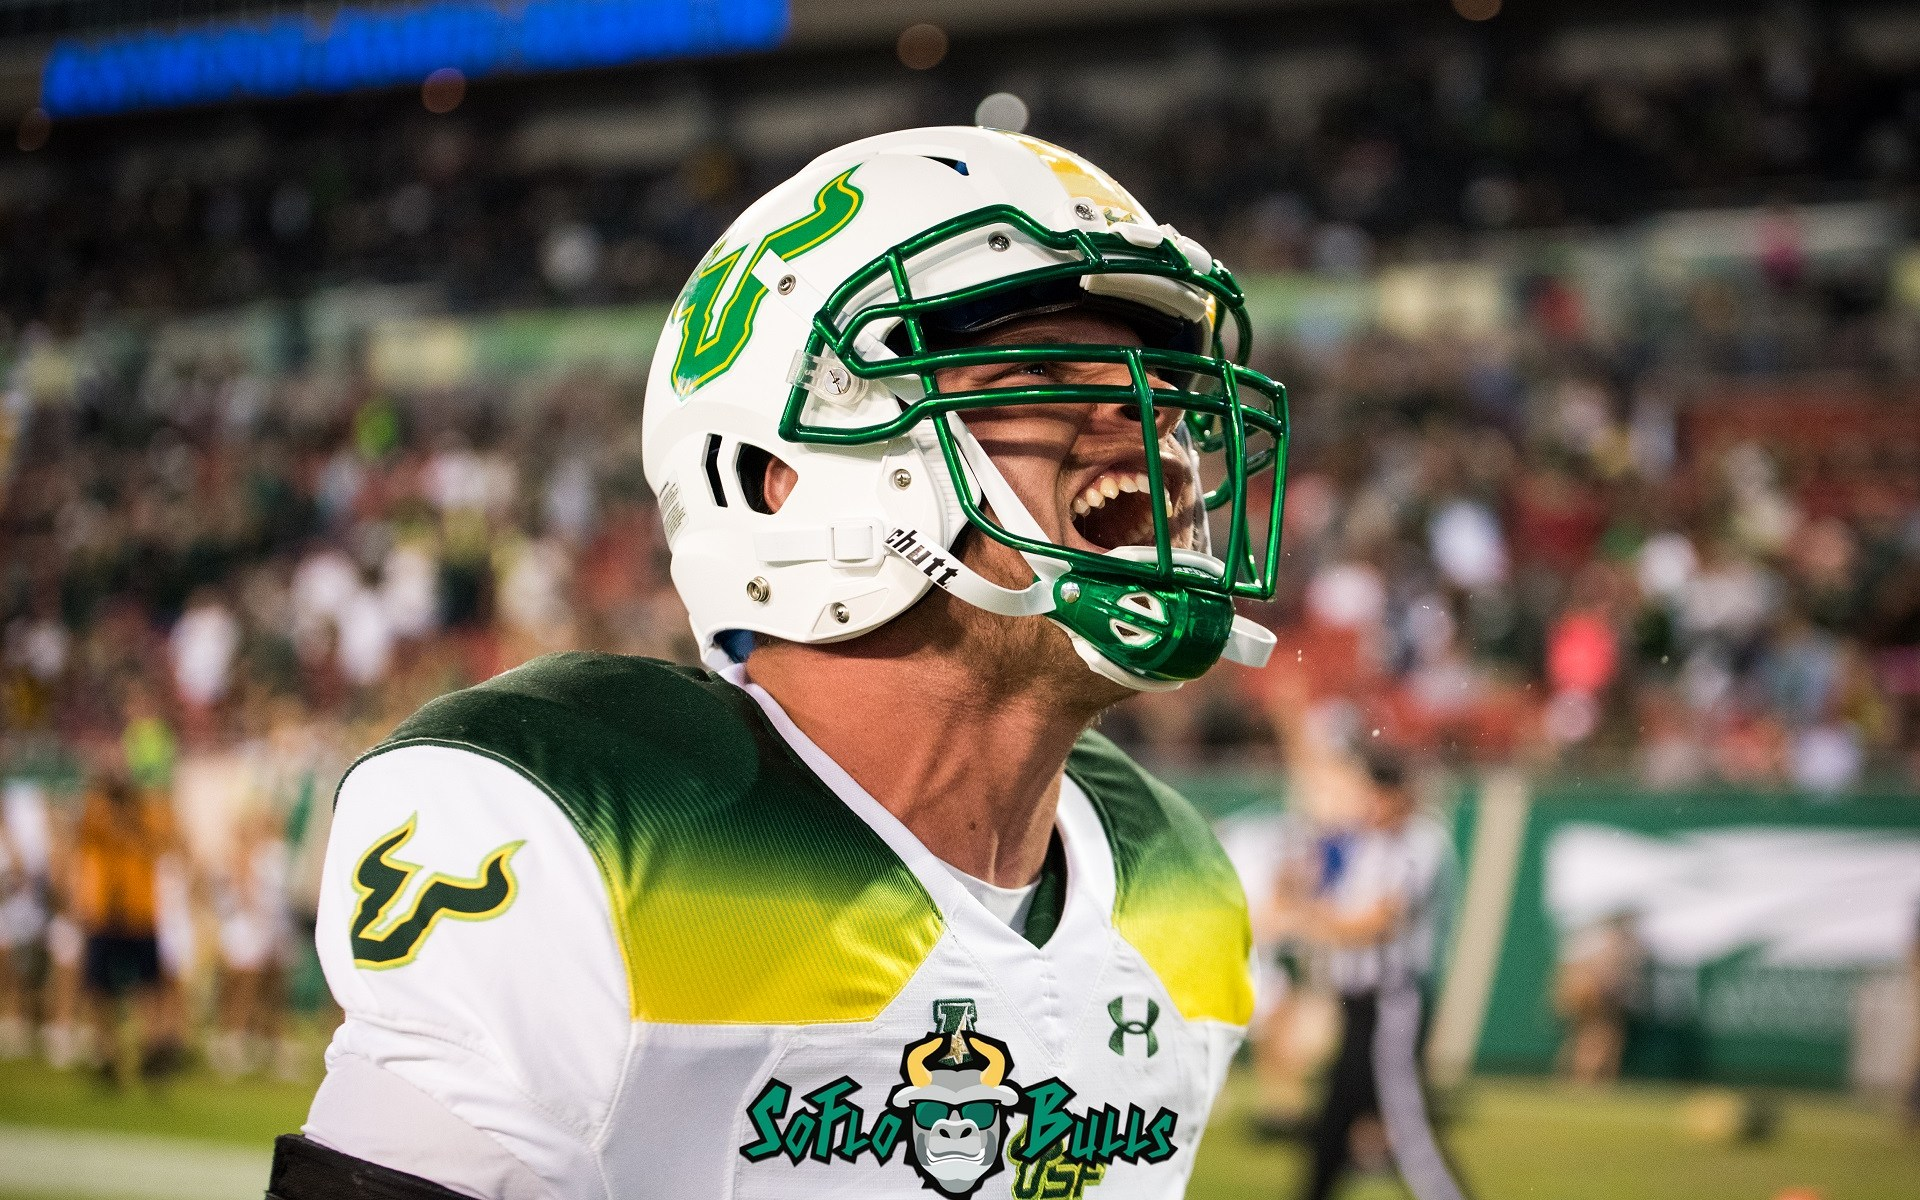 🎙AUDIO🎙 Interview with USF All-Time Leading Tackler LB Auggie Sanchez - SoFloBulls.com